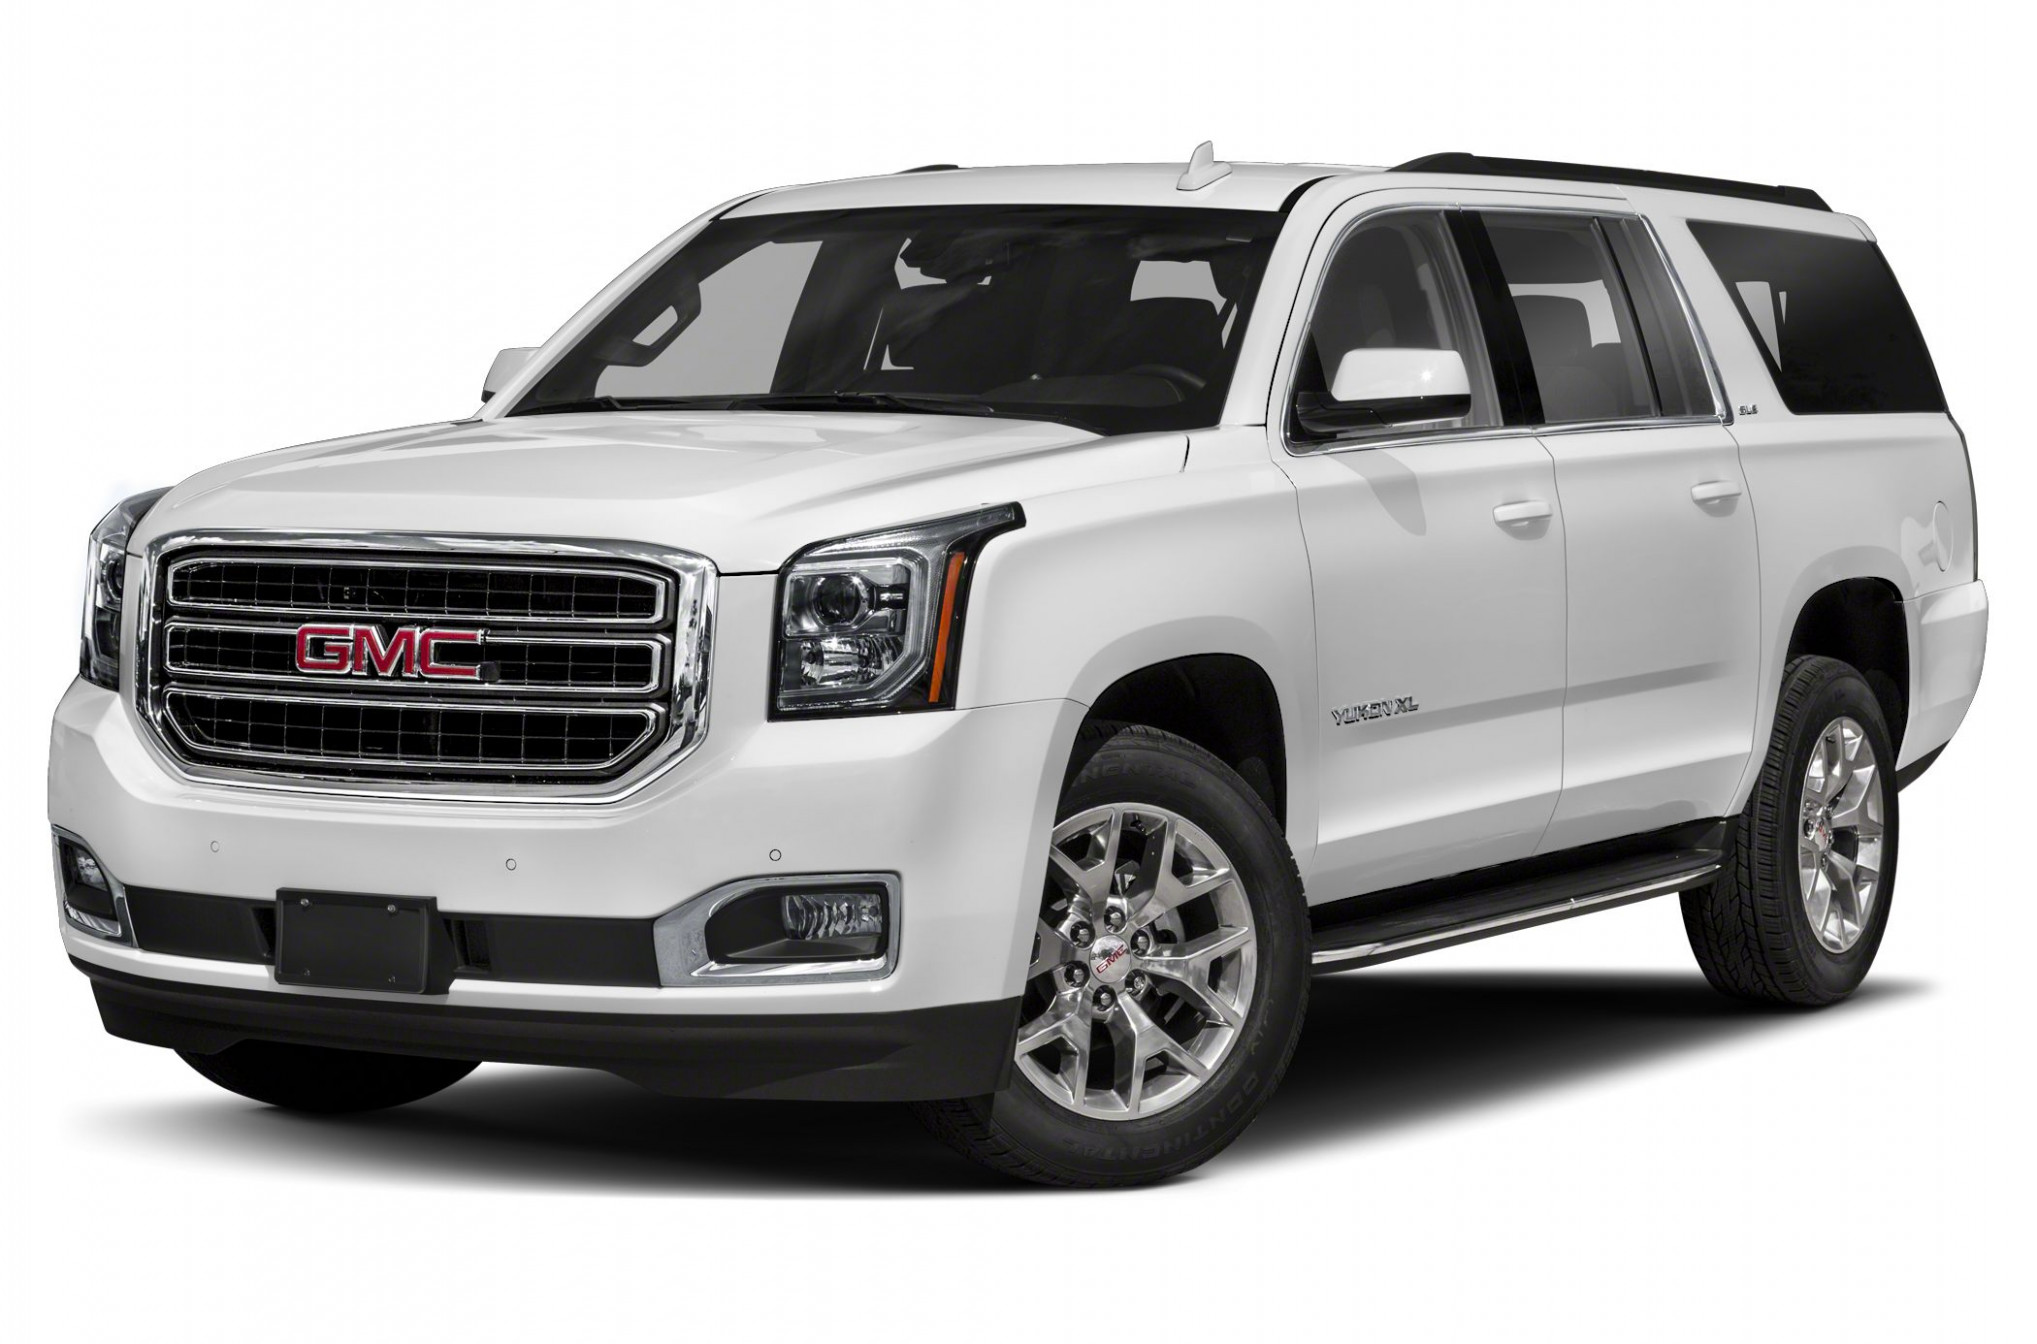 8 GMC Yukon XL SLT 8x8 Specs and Prices